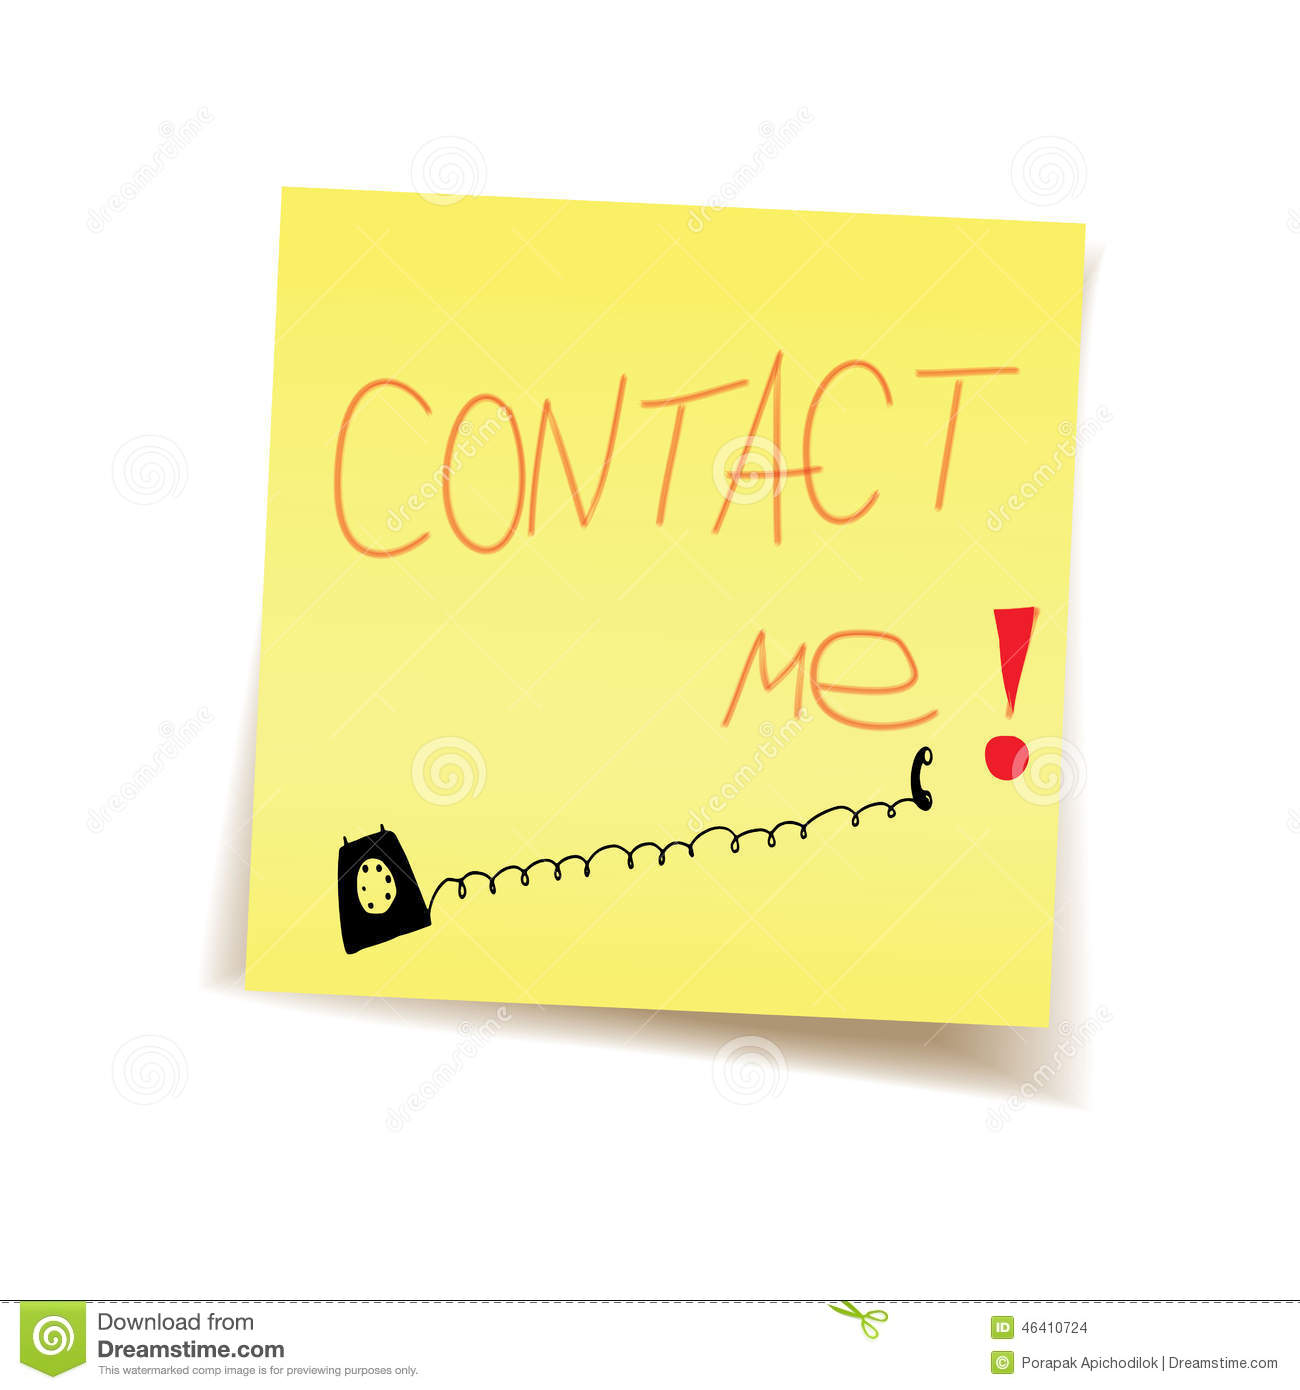 Contact me on post it